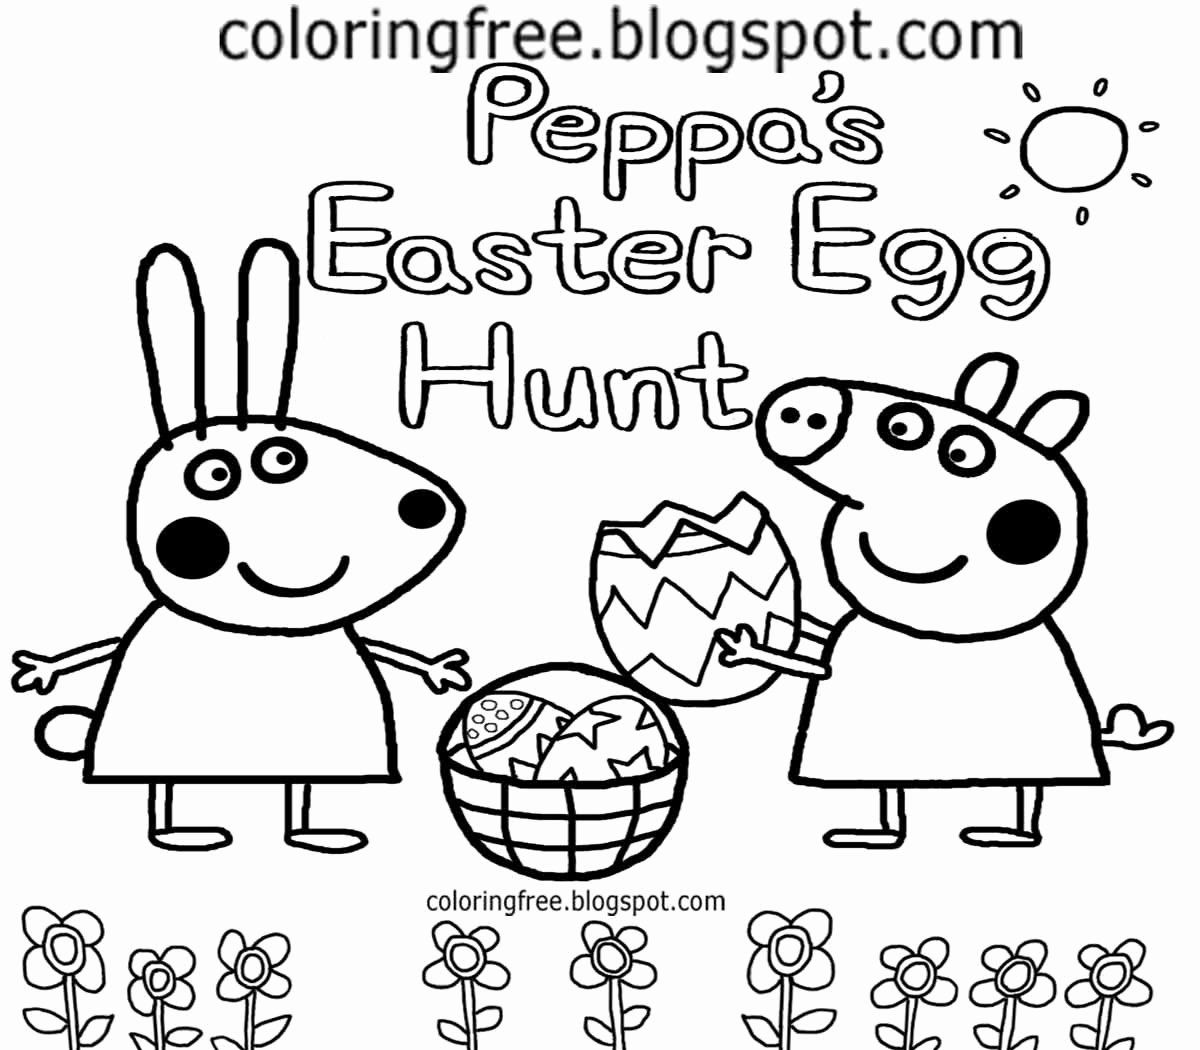 Coloring Cartoons Peppa Pig Fresh Free Coloring Pages